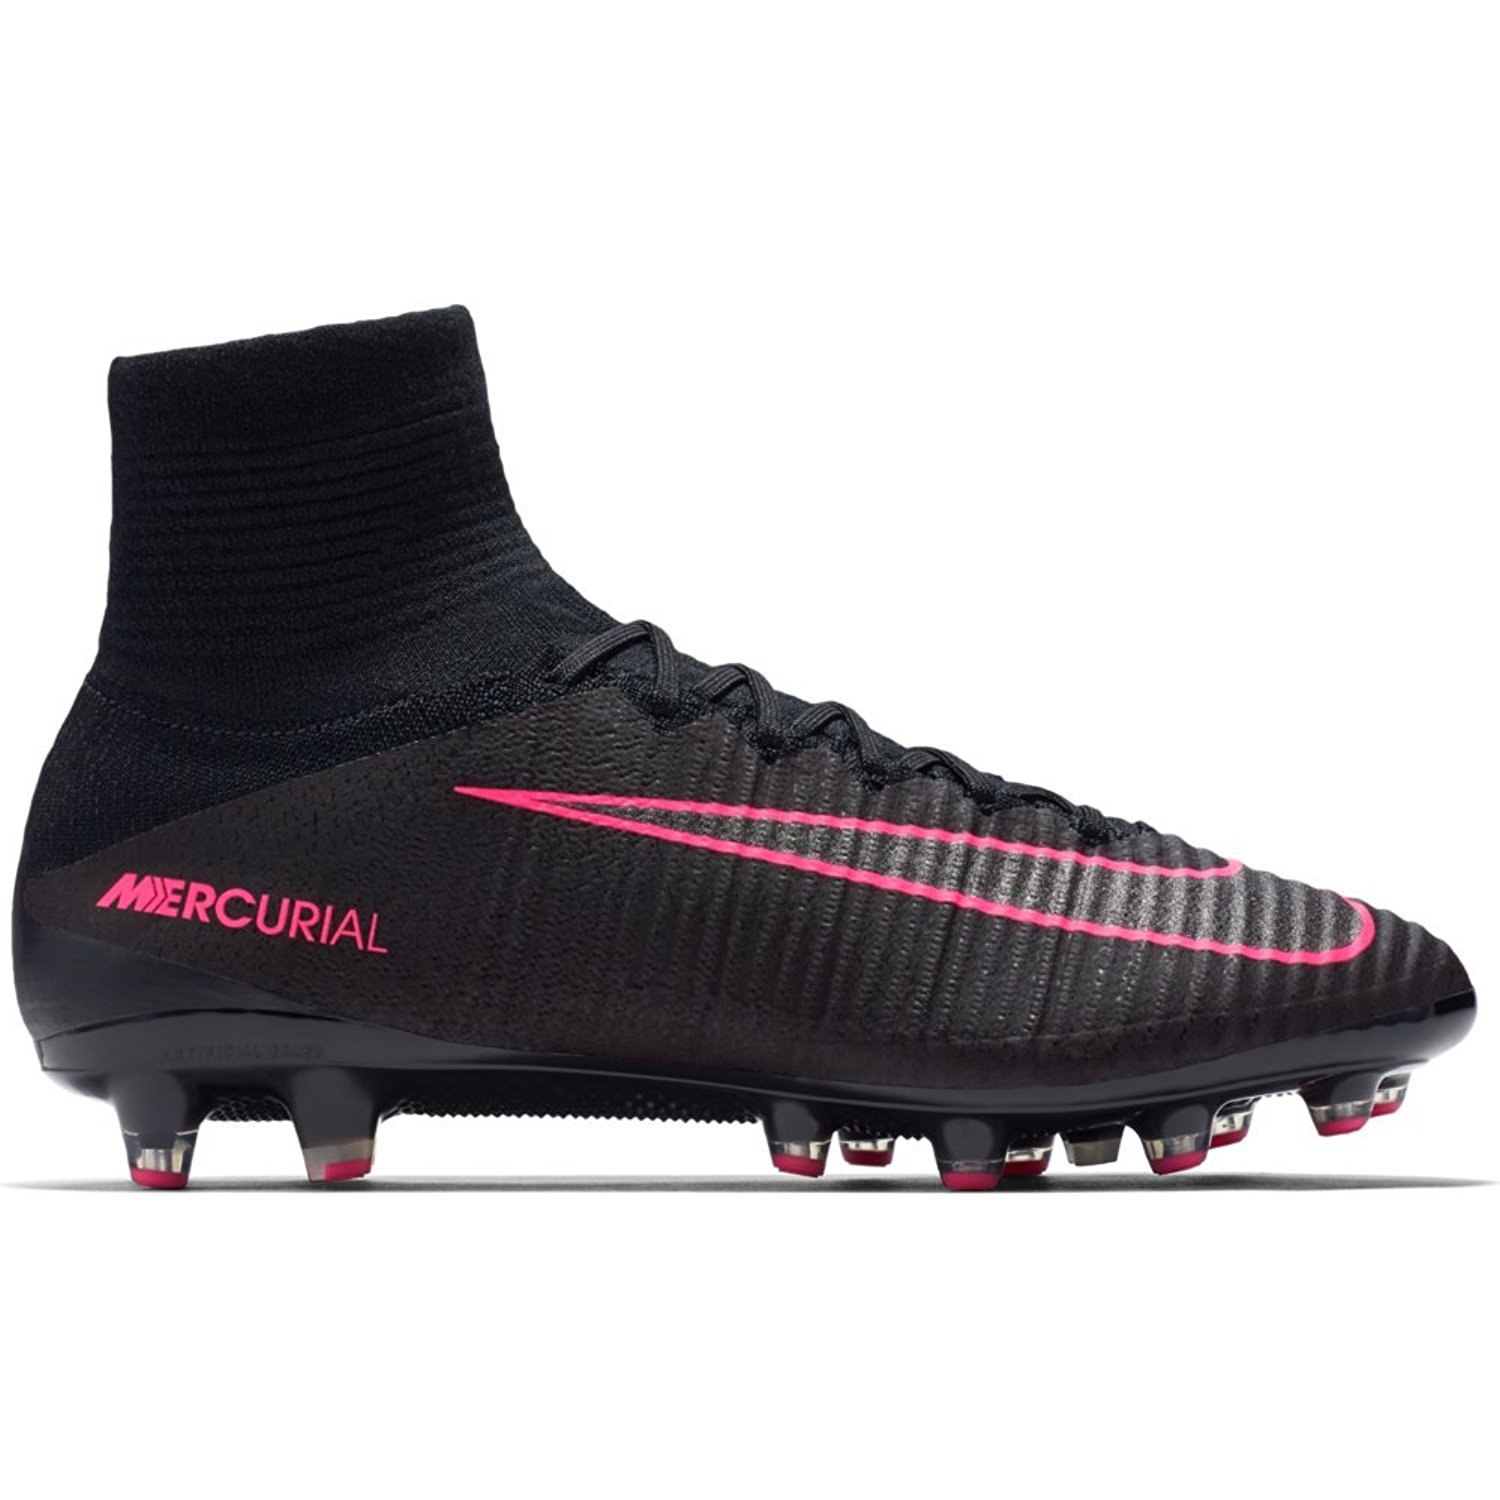 fc1a0fbb7 Get Quotations · Nike Mens Nike Mercurial Superfly V All Ground Cleats